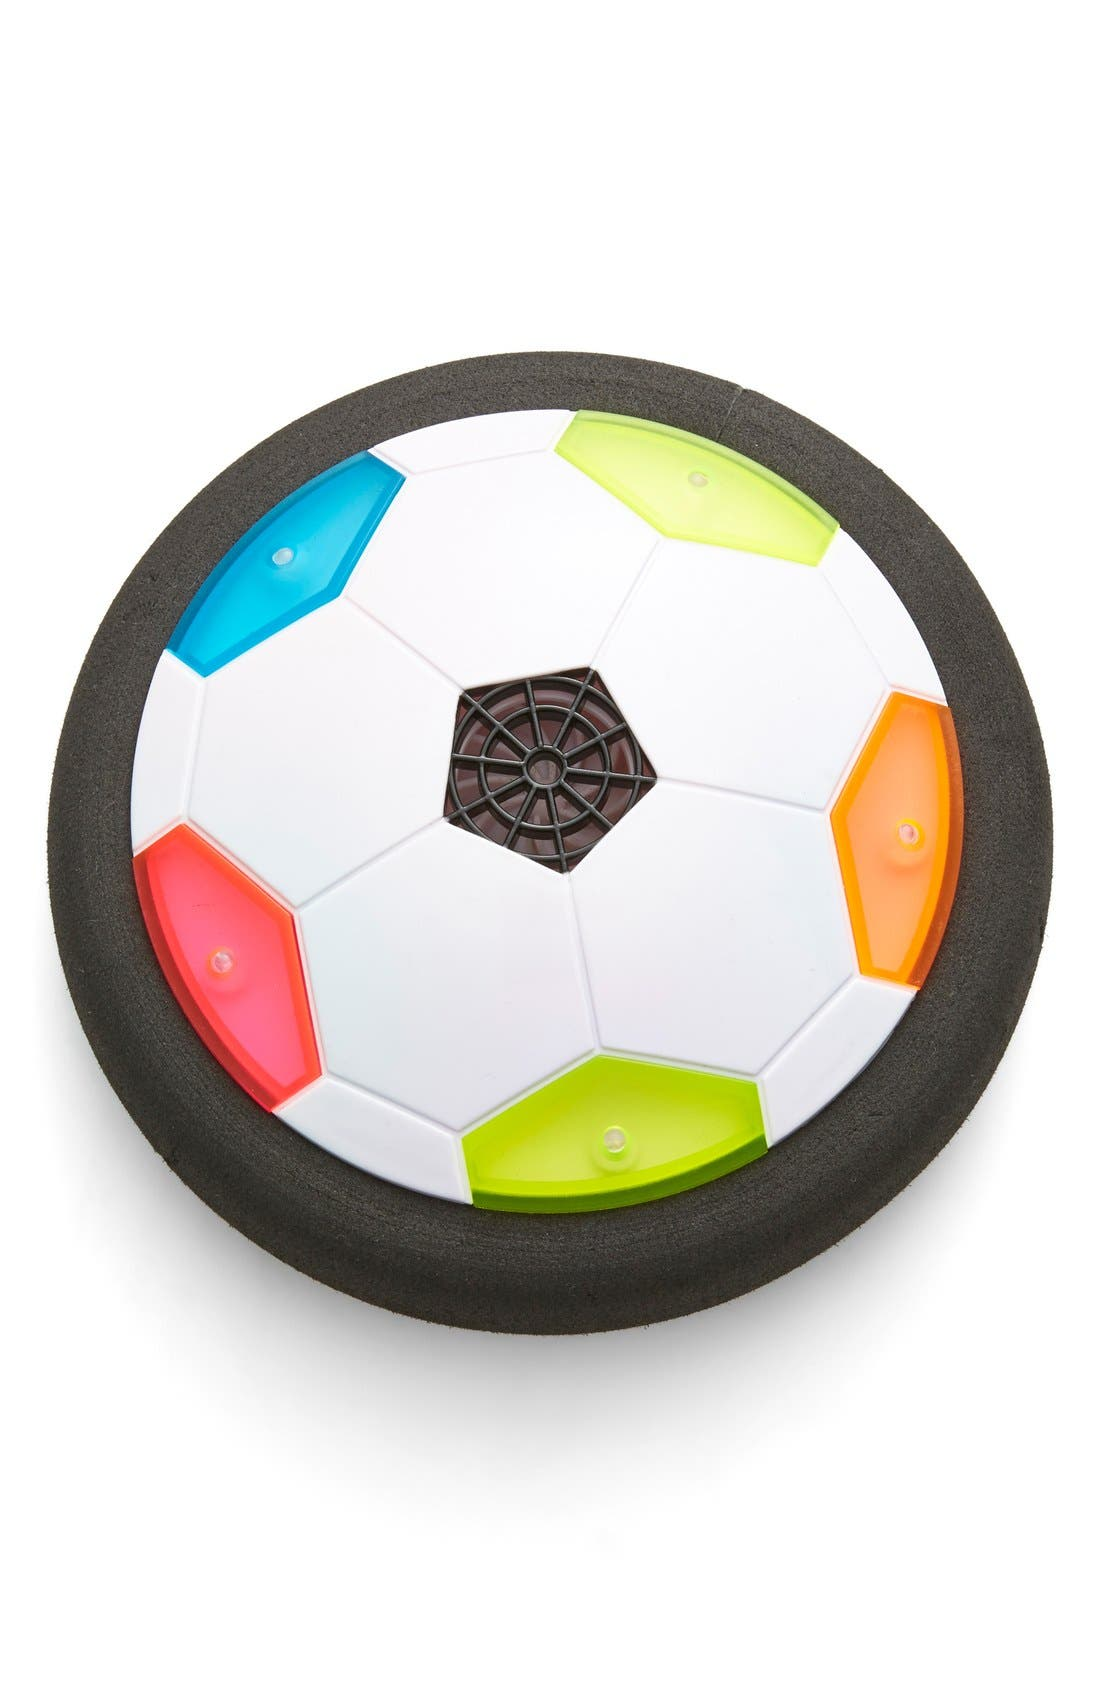 Can You Imagine UltraGlow Light-Up Air Power Soccer Disk